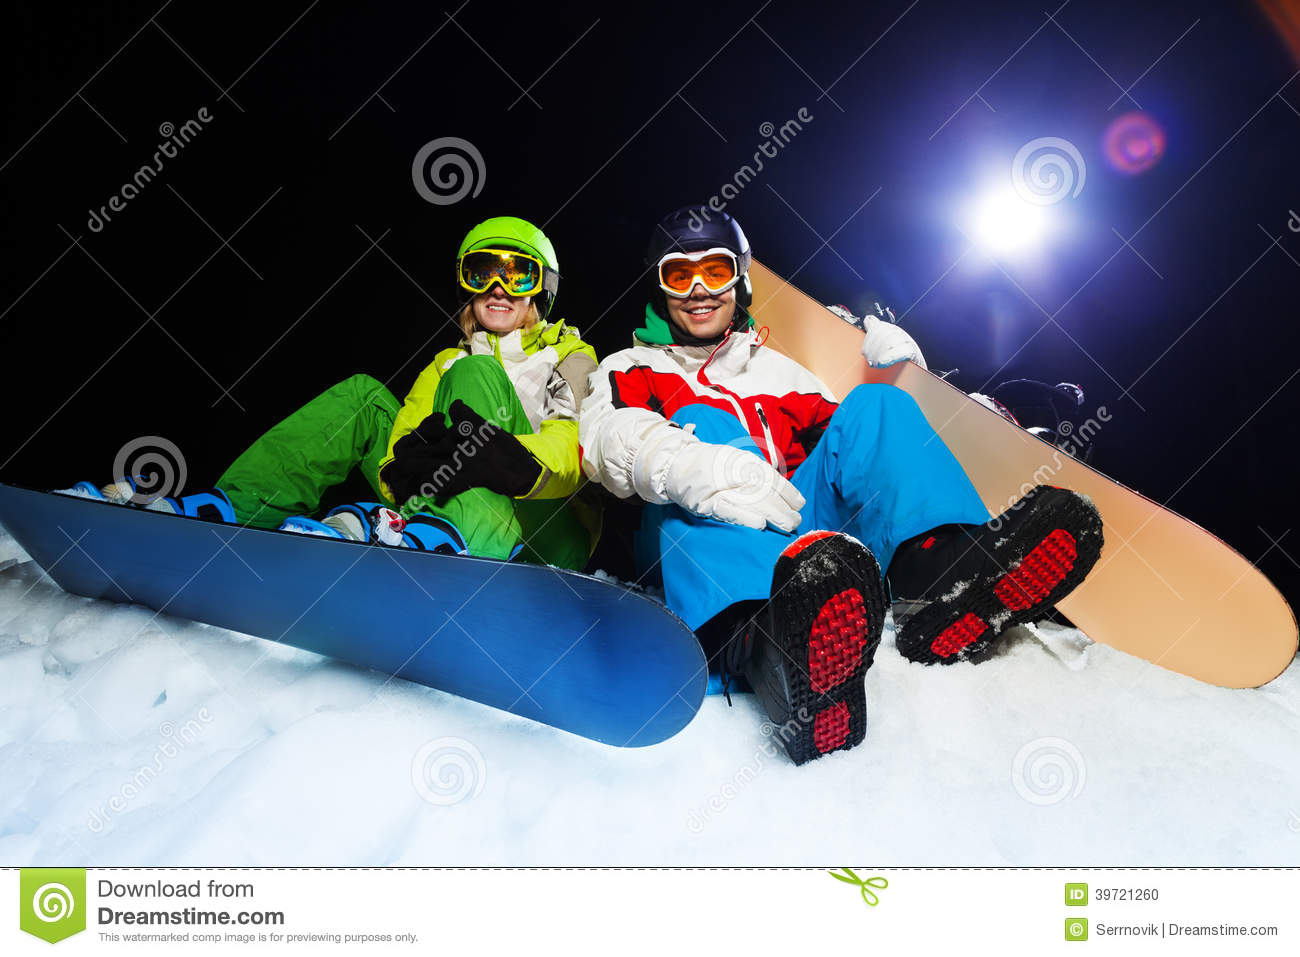 d167638bb9b5 Two smiling snowboarders wearing ski masks sitting together at night with  flash on the background